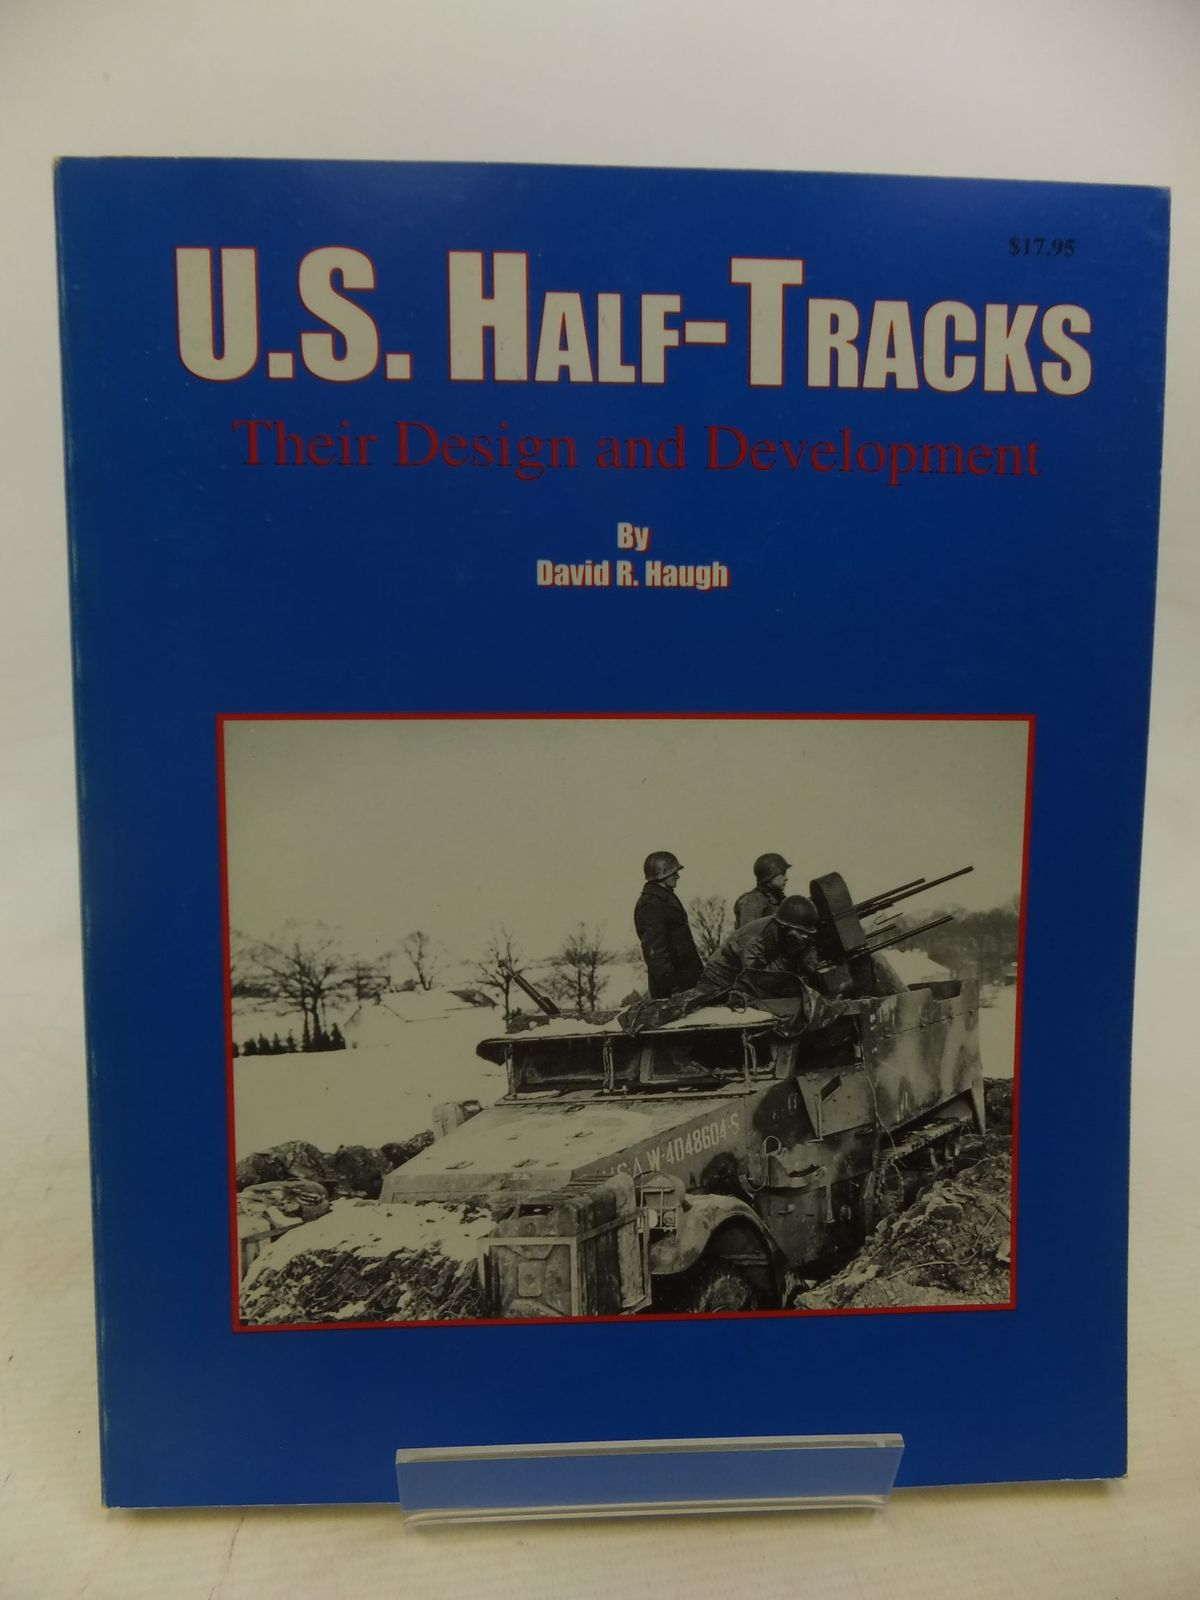 Photo of U.S. HALF-TRACKS THEIR DESIGN AND DEVELOPMENT written by Haugh, David R. published by Darlington Productions Inc. (STOCK CODE: 1712246)  for sale by Stella & Rose's Books